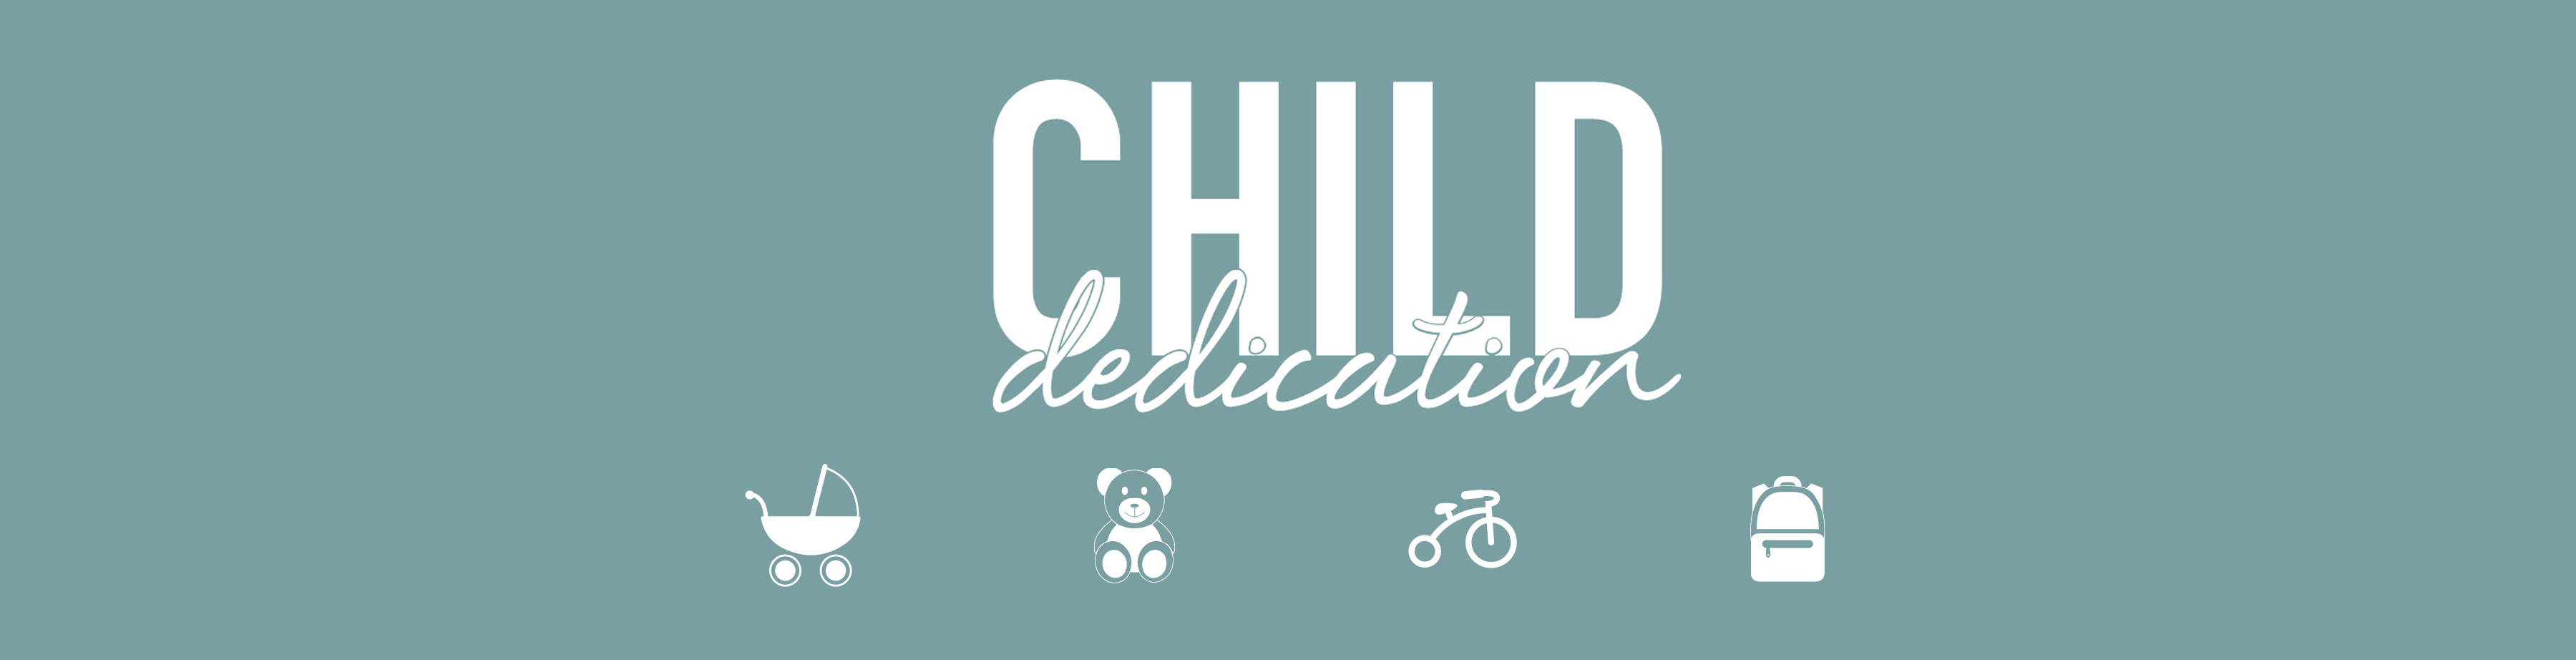 Child Ded Event Header image